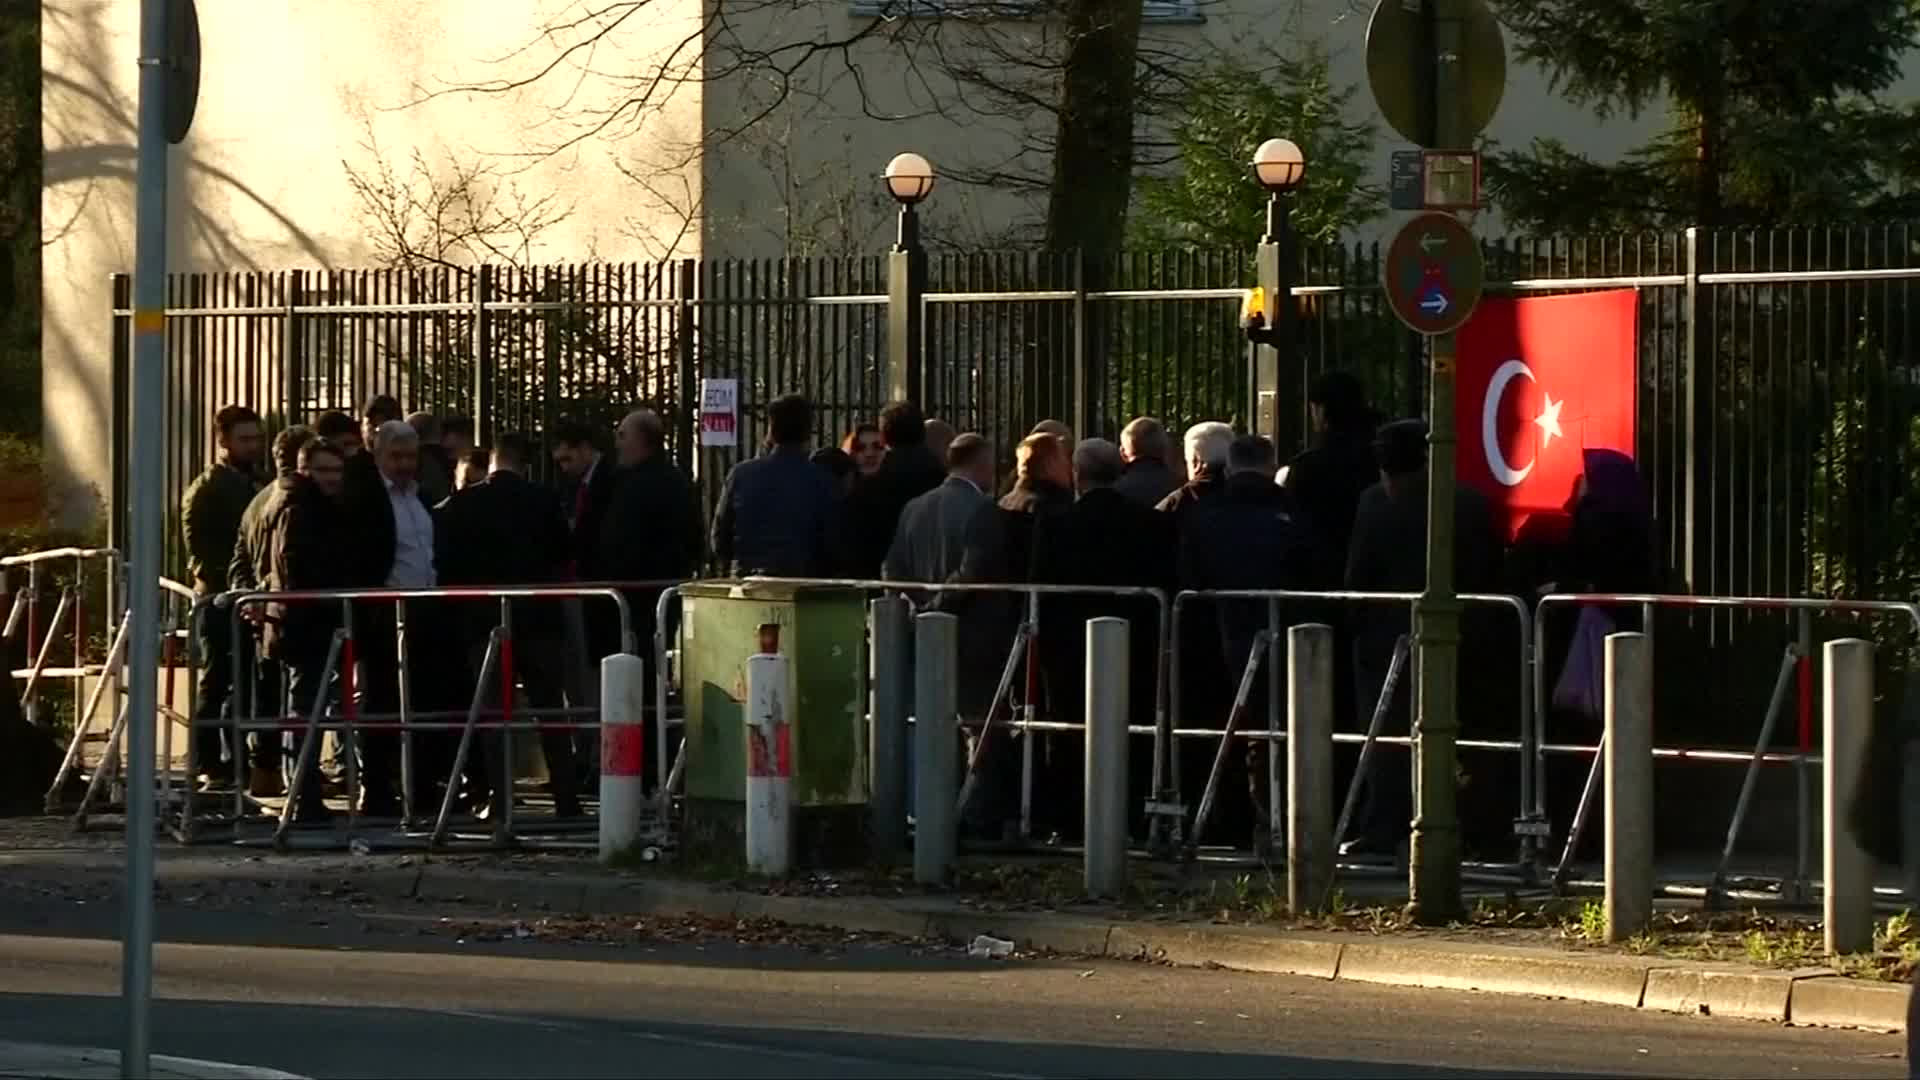 Turks living in Germany cast their vote in referendum